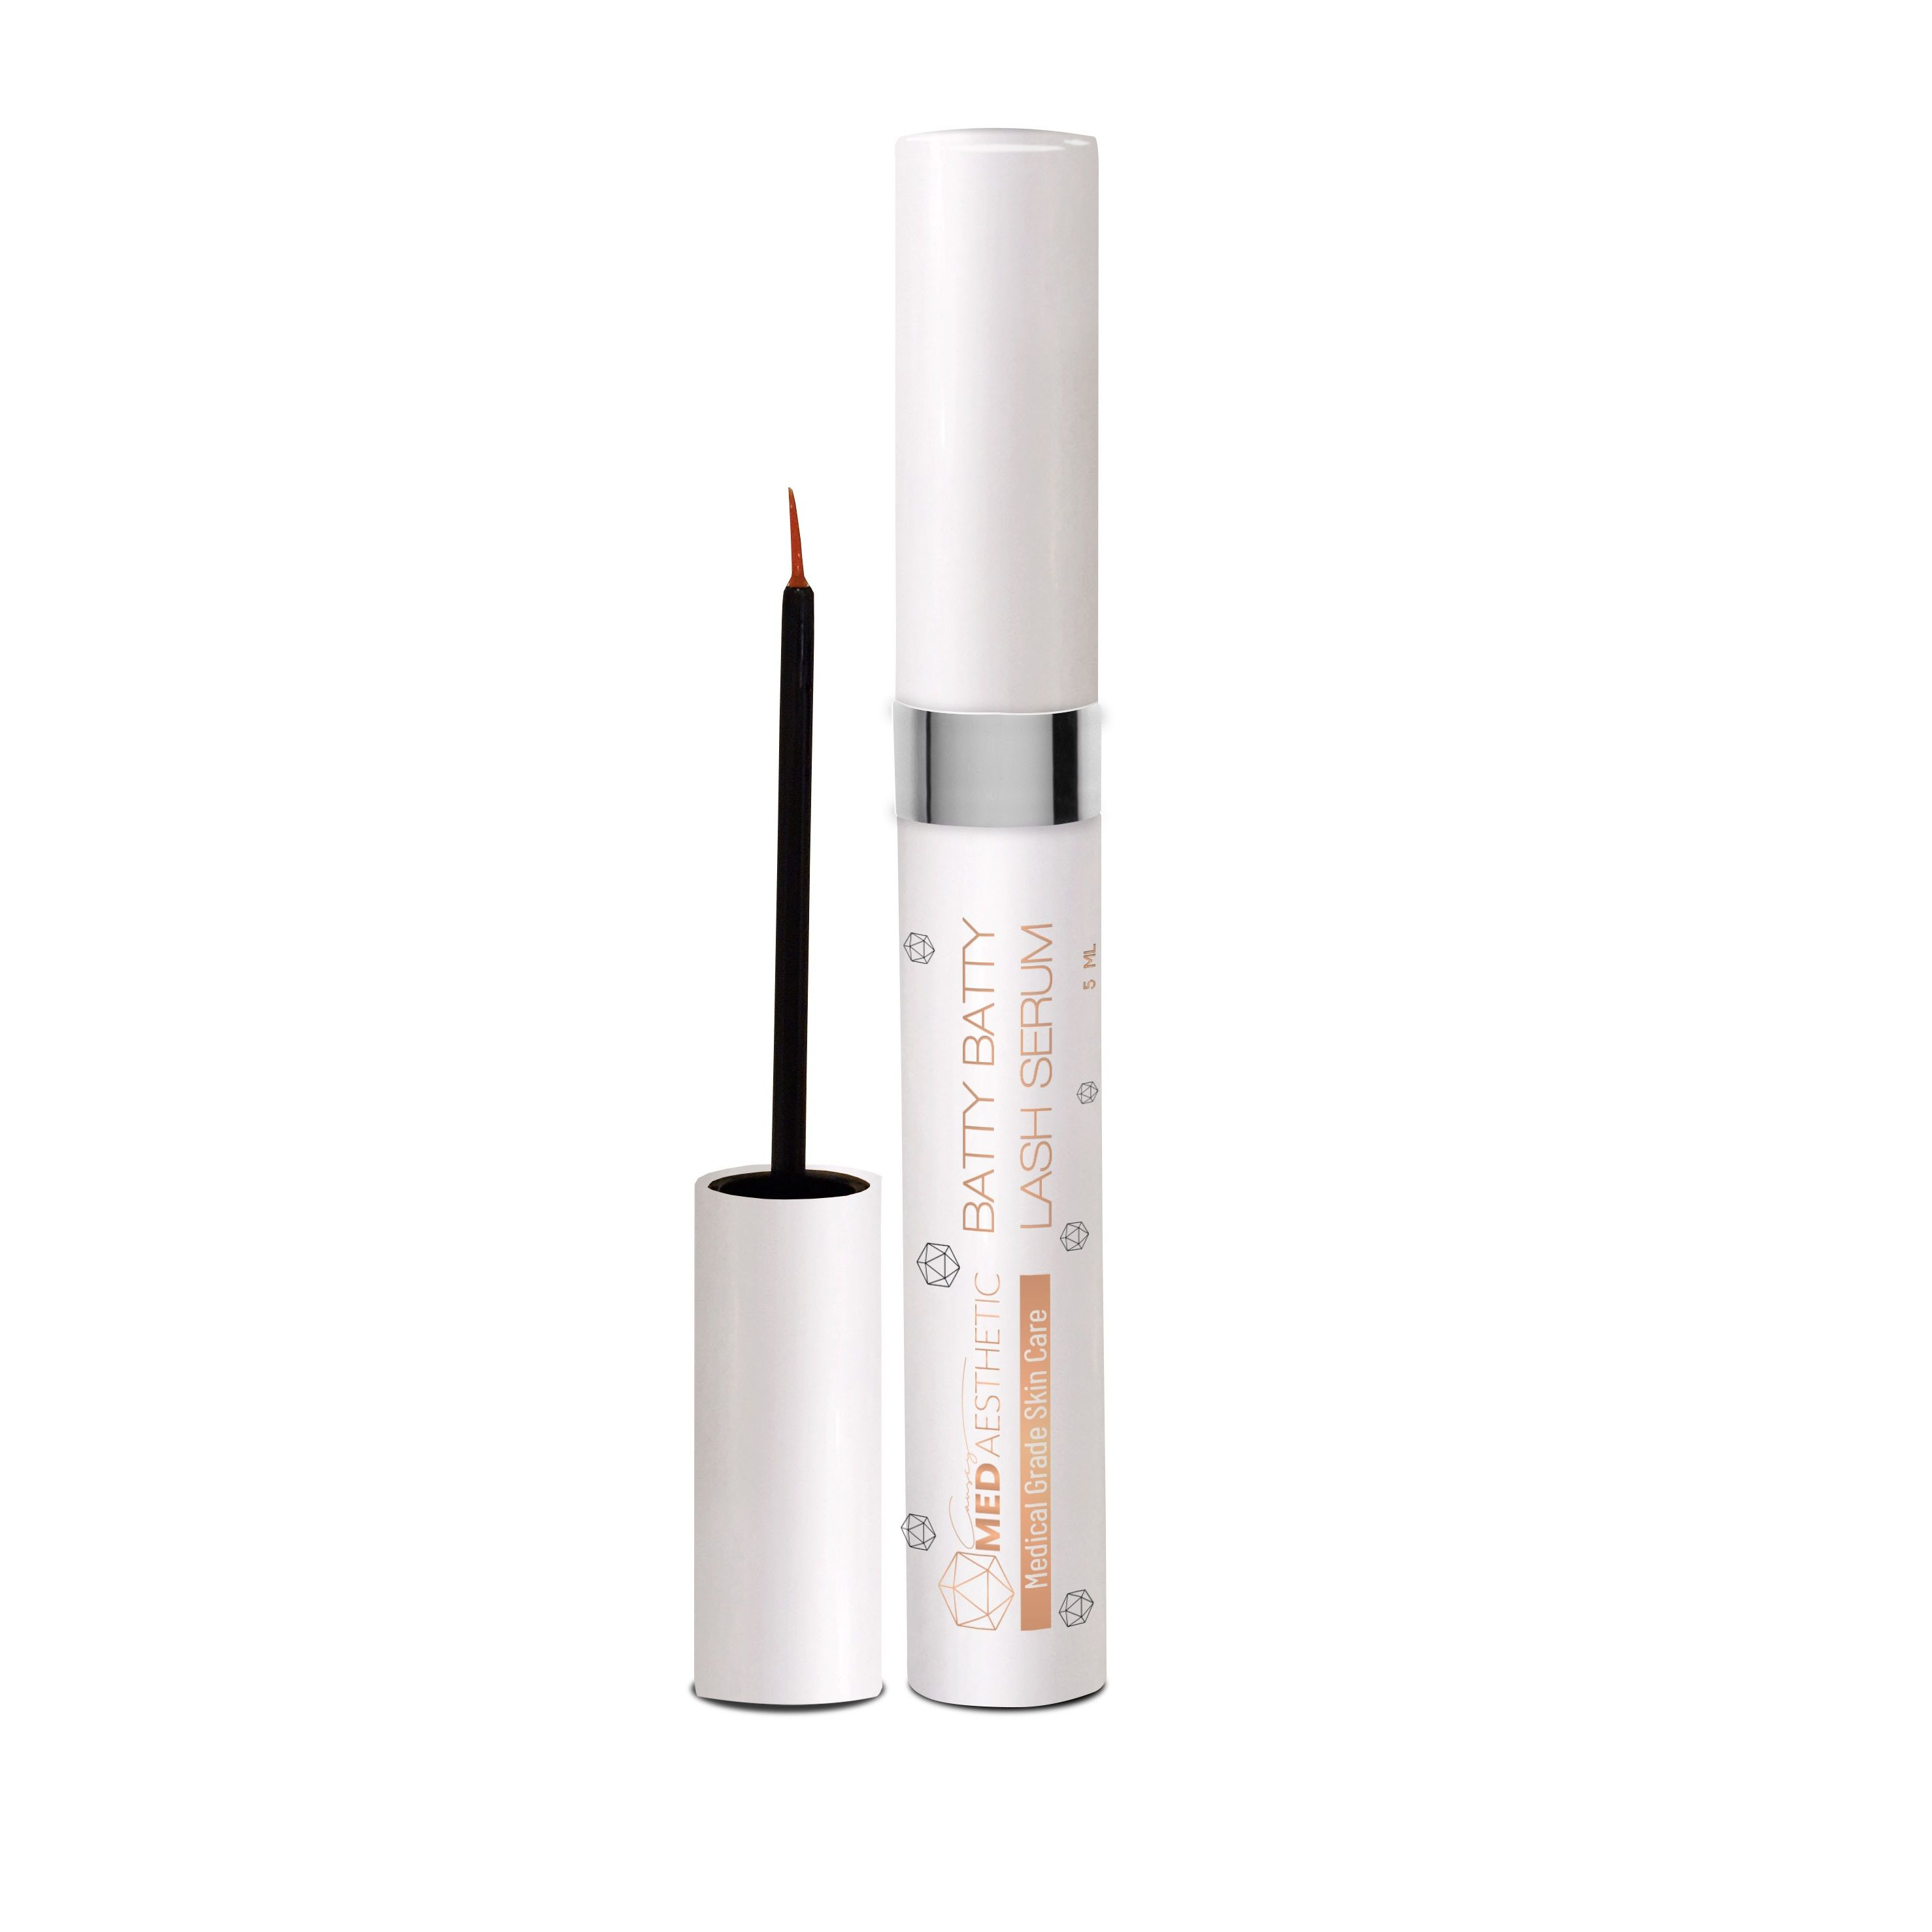 31c1b2852ac Batty Batty Lash Serum by Causey Med Aesthetic in Baton Rouge promotes  thicker, fuller and more luscious lashes with visible results within 2  weeks of ...